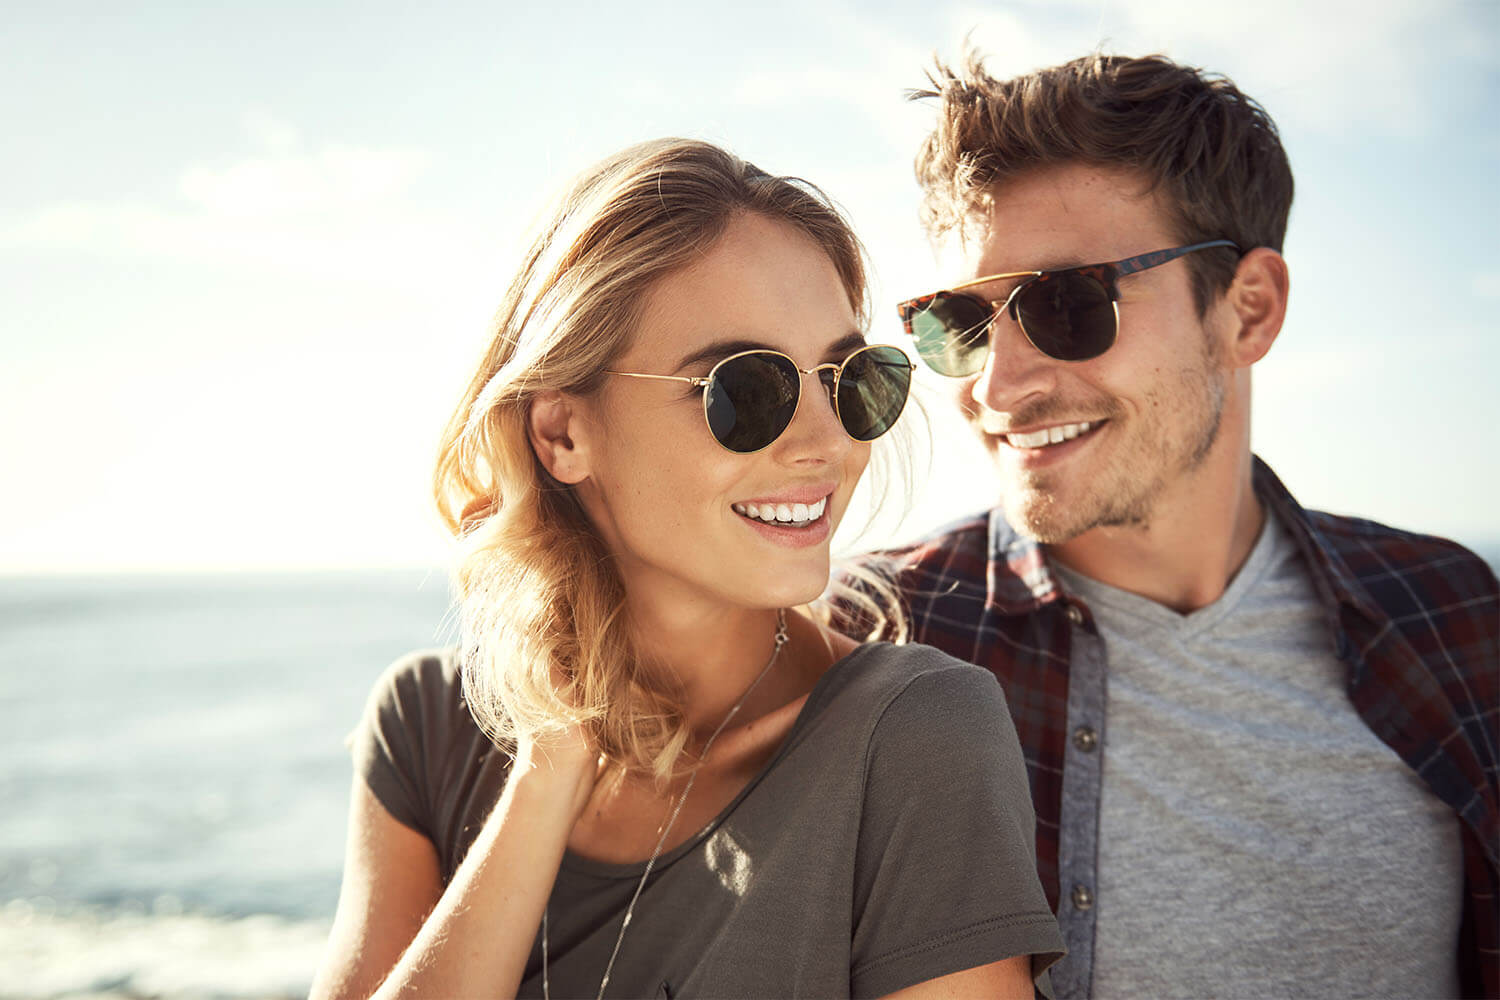 AA smiling couple showing their perfect teeth